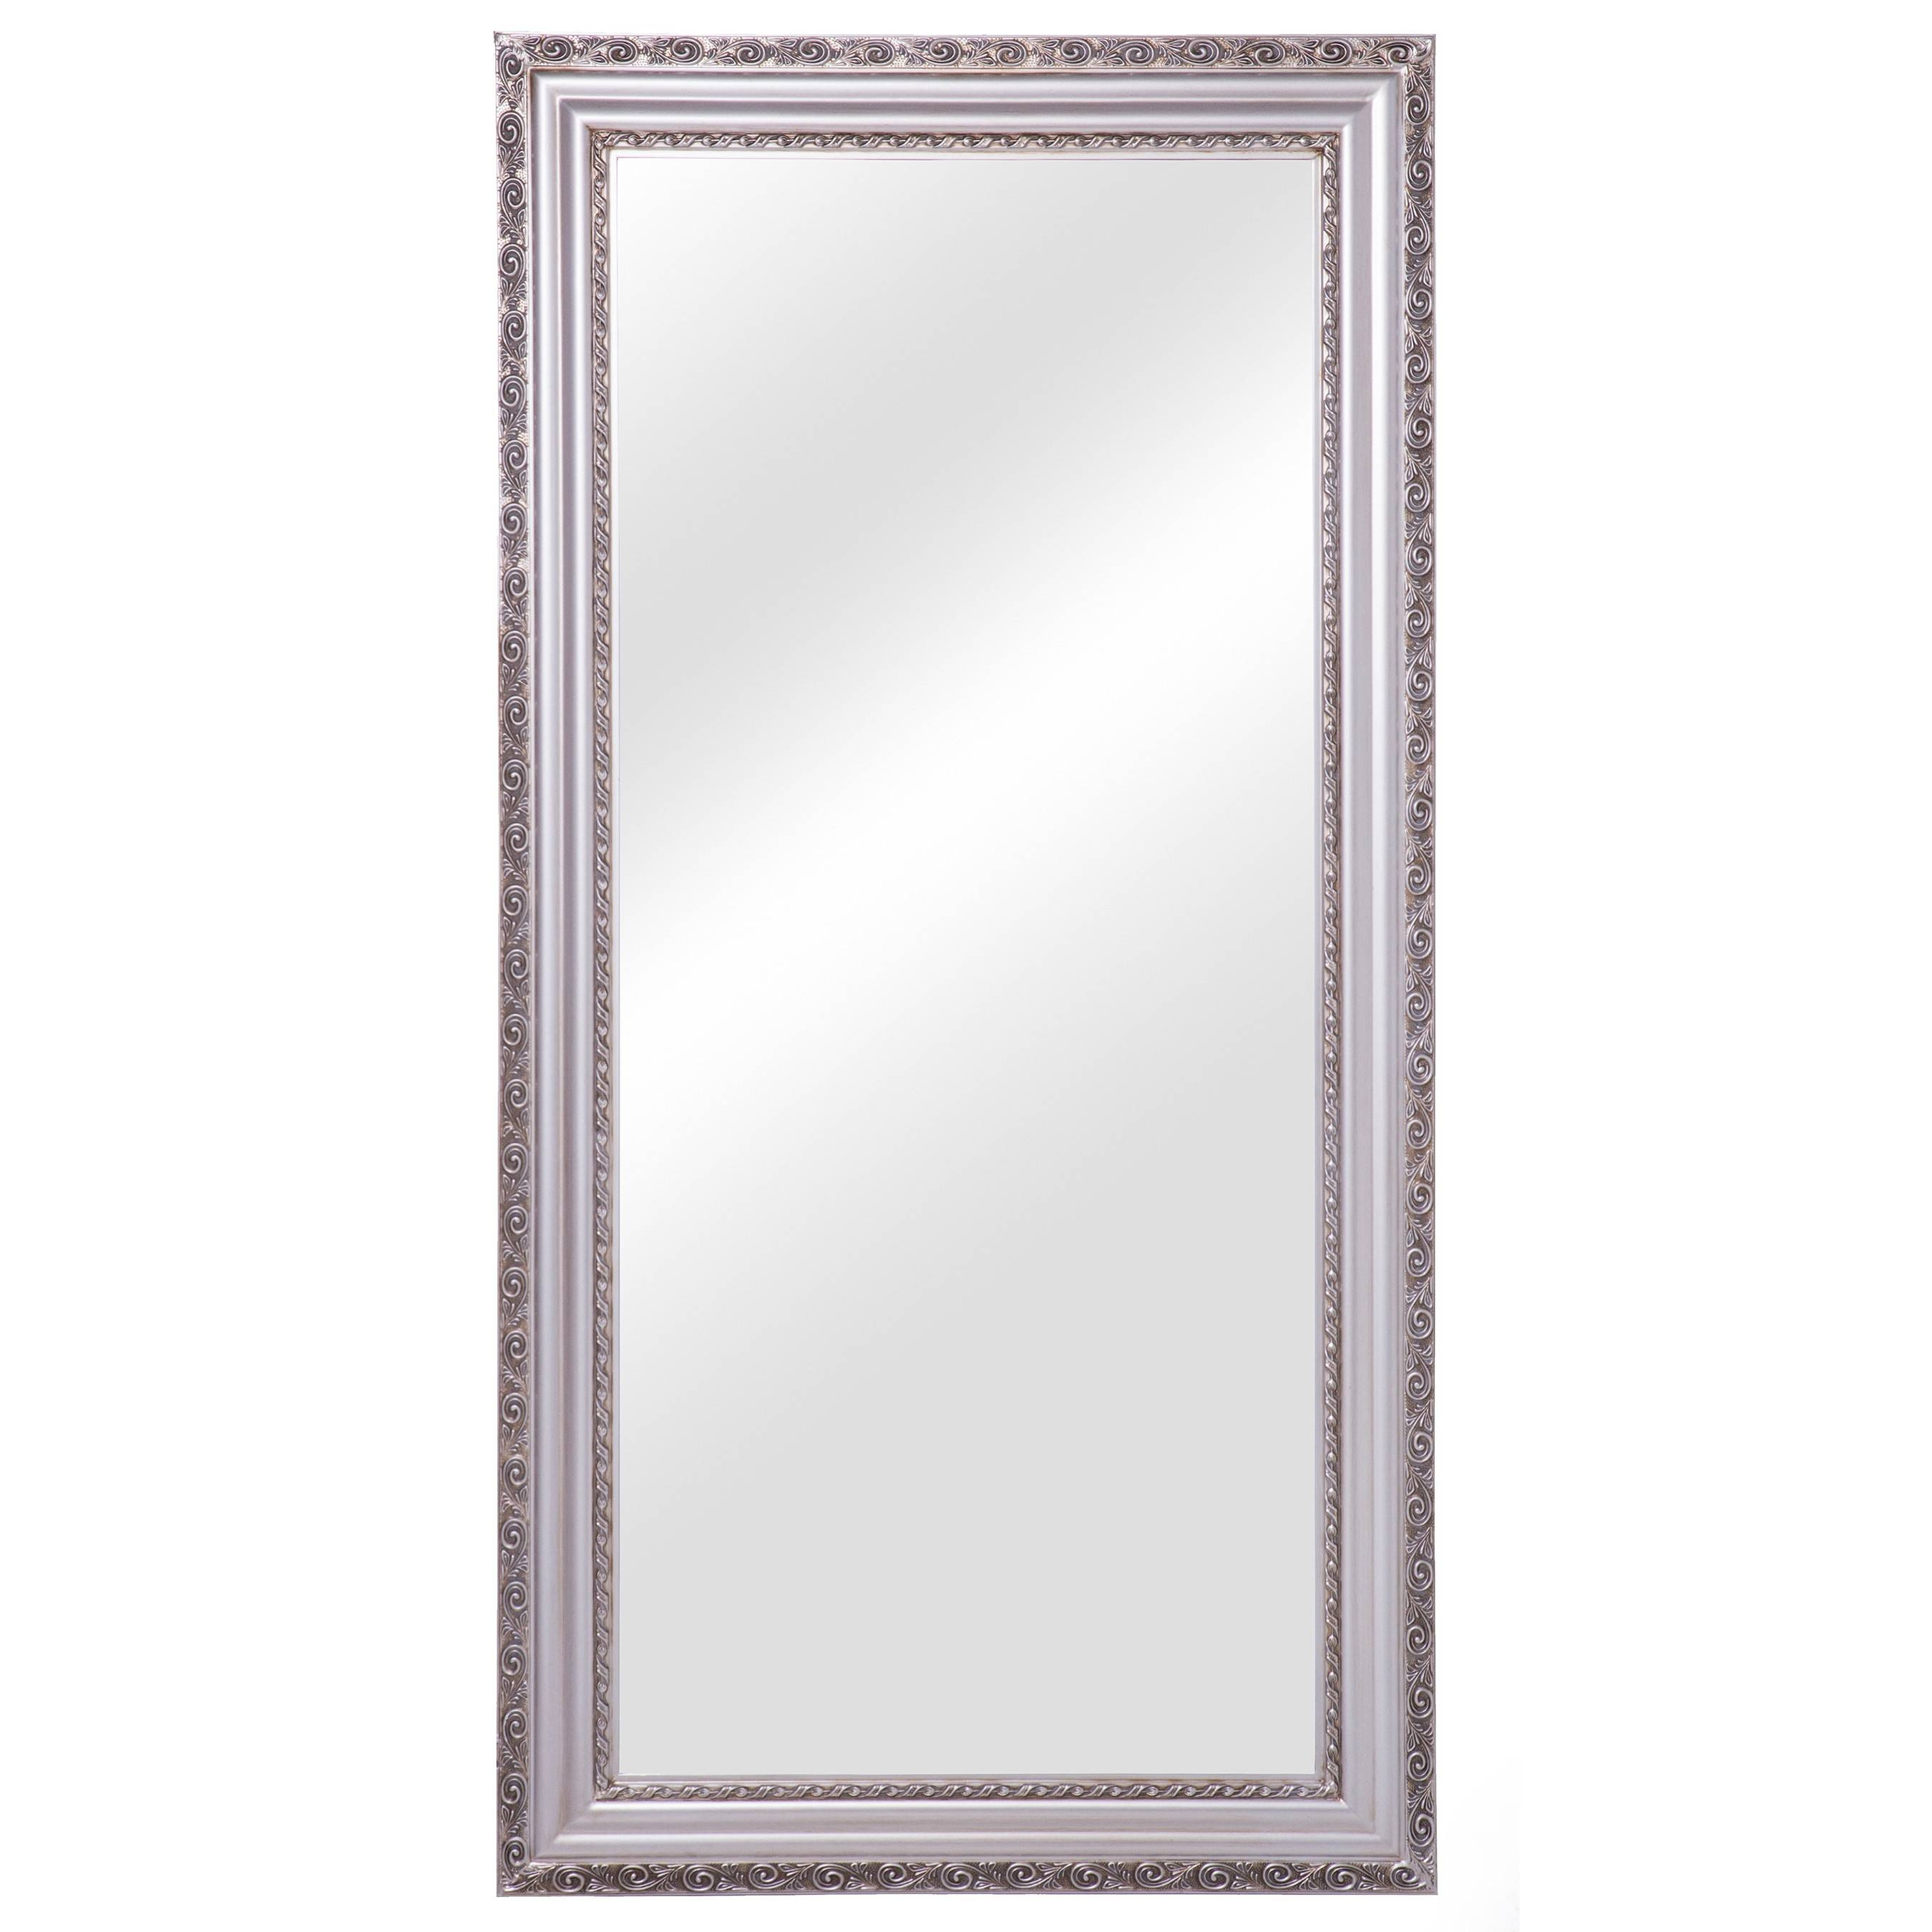 25 Best Tall Silver Mirrors